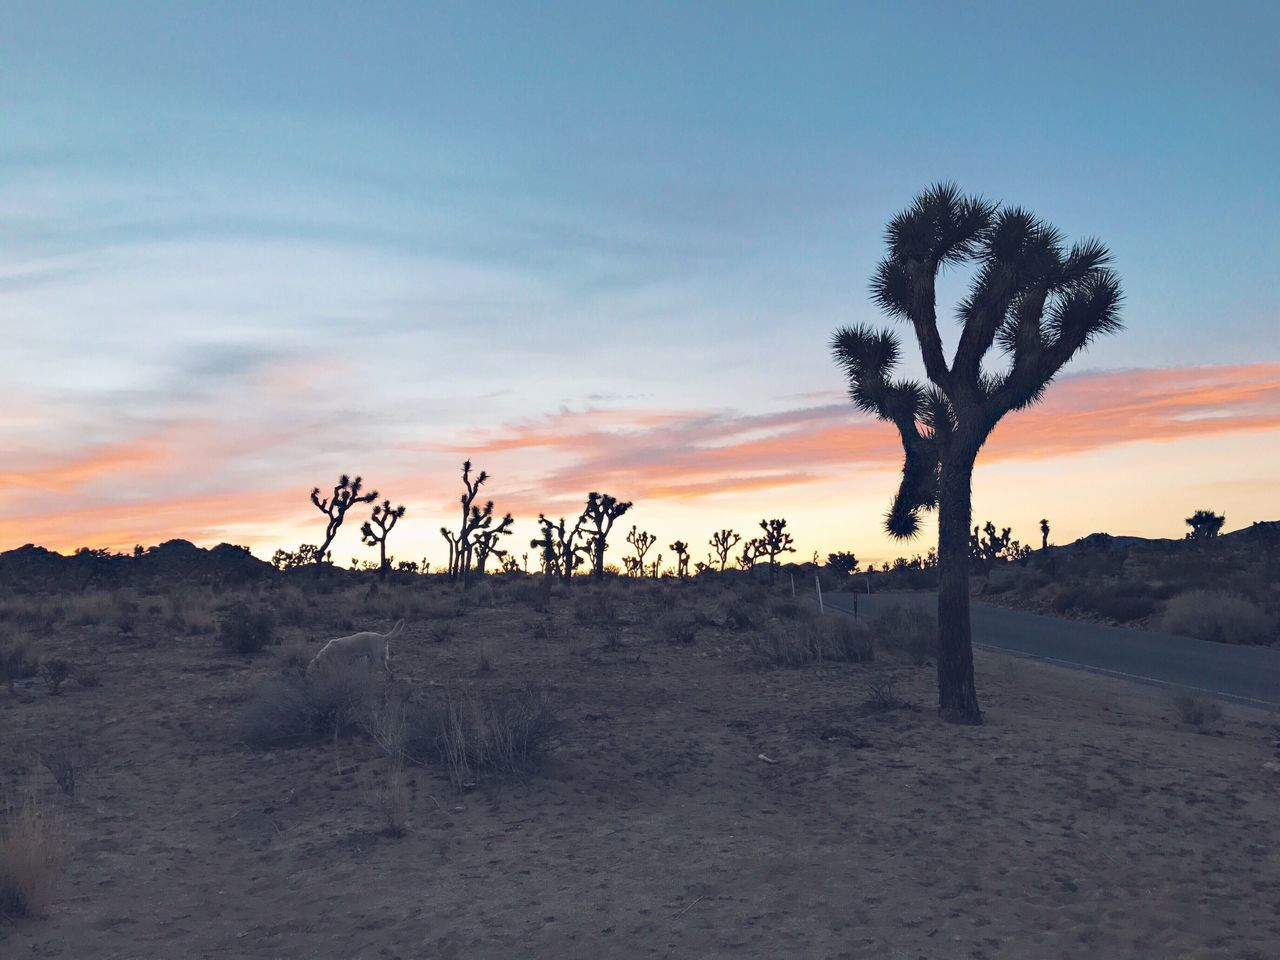 sky, tranquil scene, scenics - nature, plant, sunset, beauty in nature, tranquility, tree, cloud - sky, land, environment, non-urban scene, landscape, nature, no people, desert, field, sand, growth, outdoors, arid climate, climate